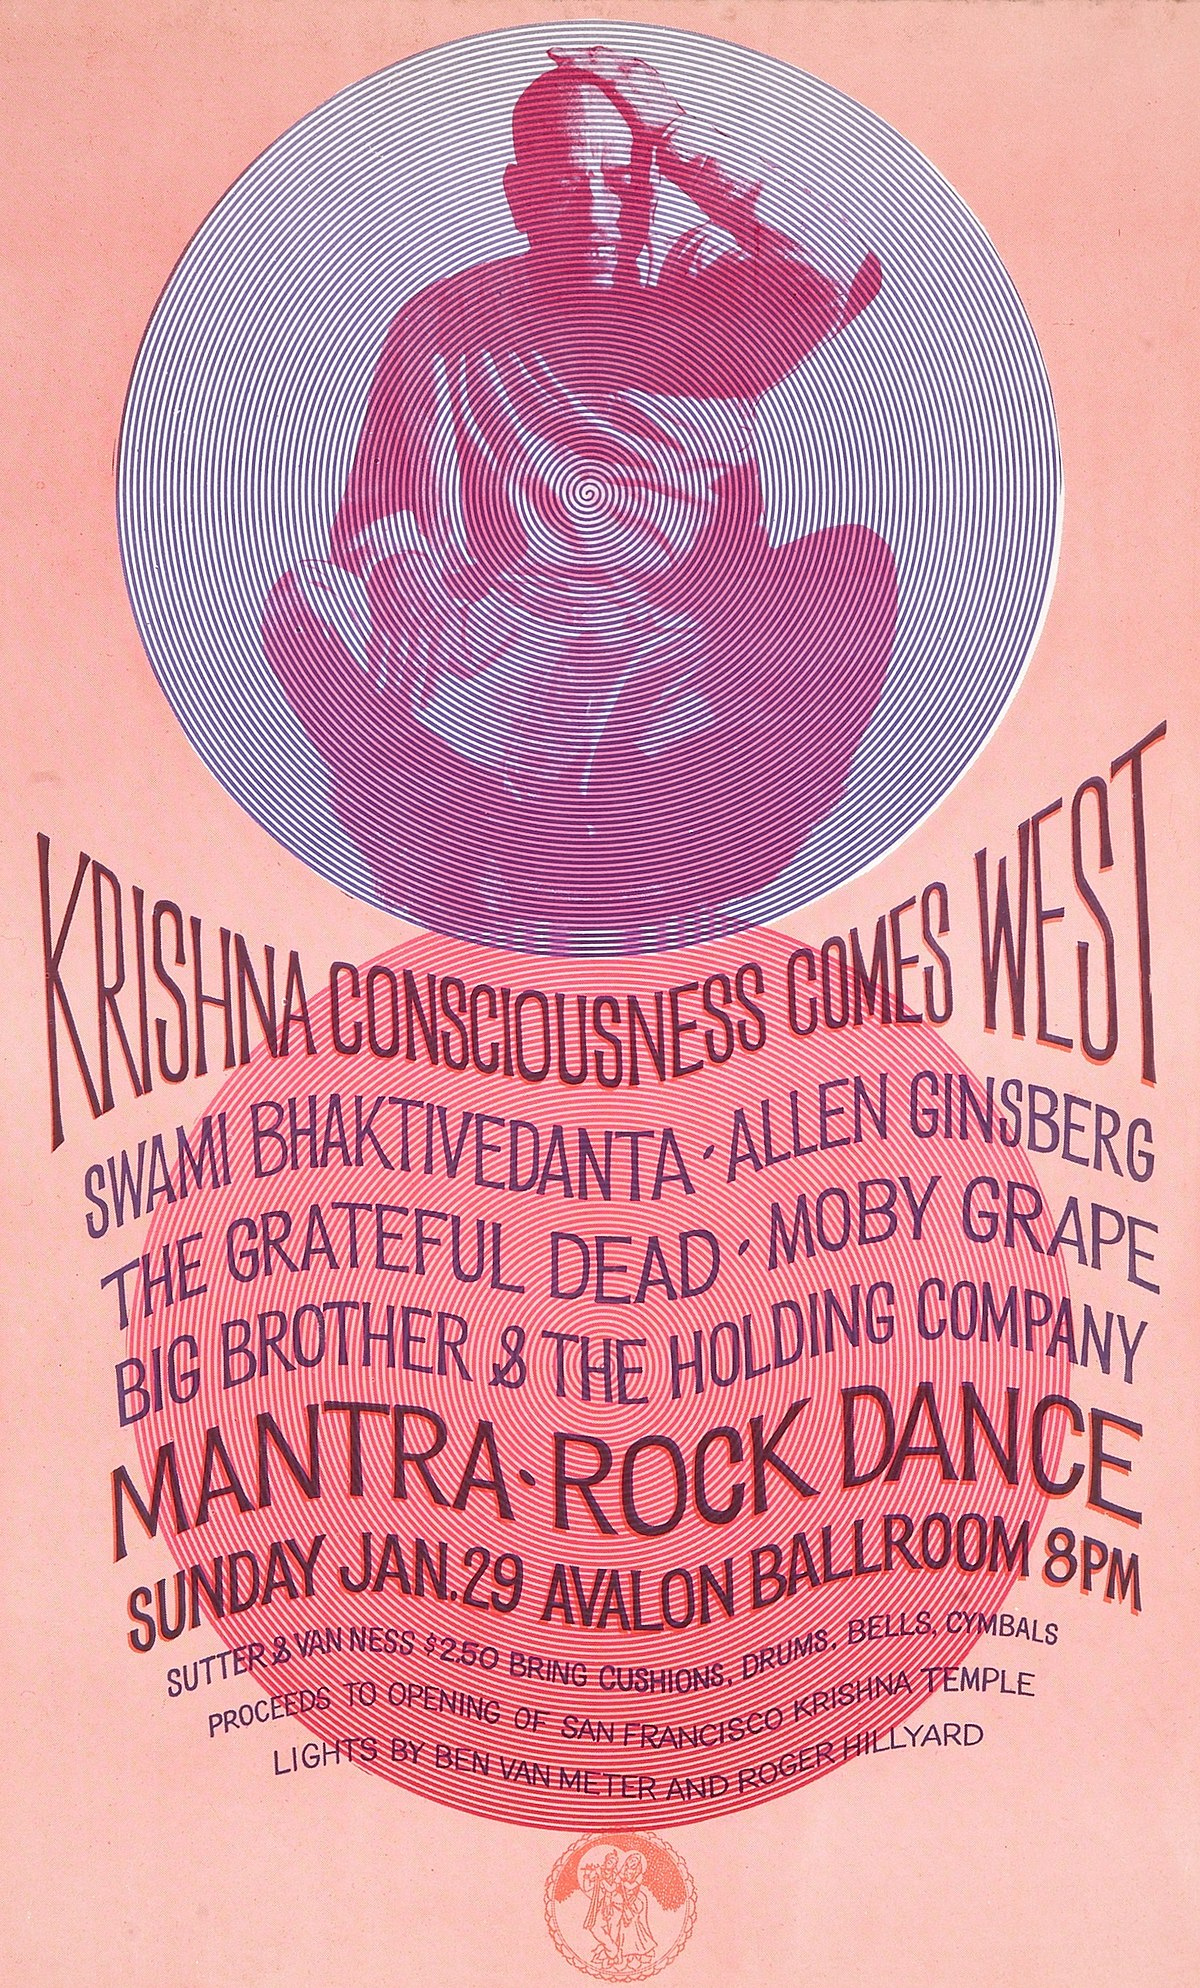 mantra rock dance